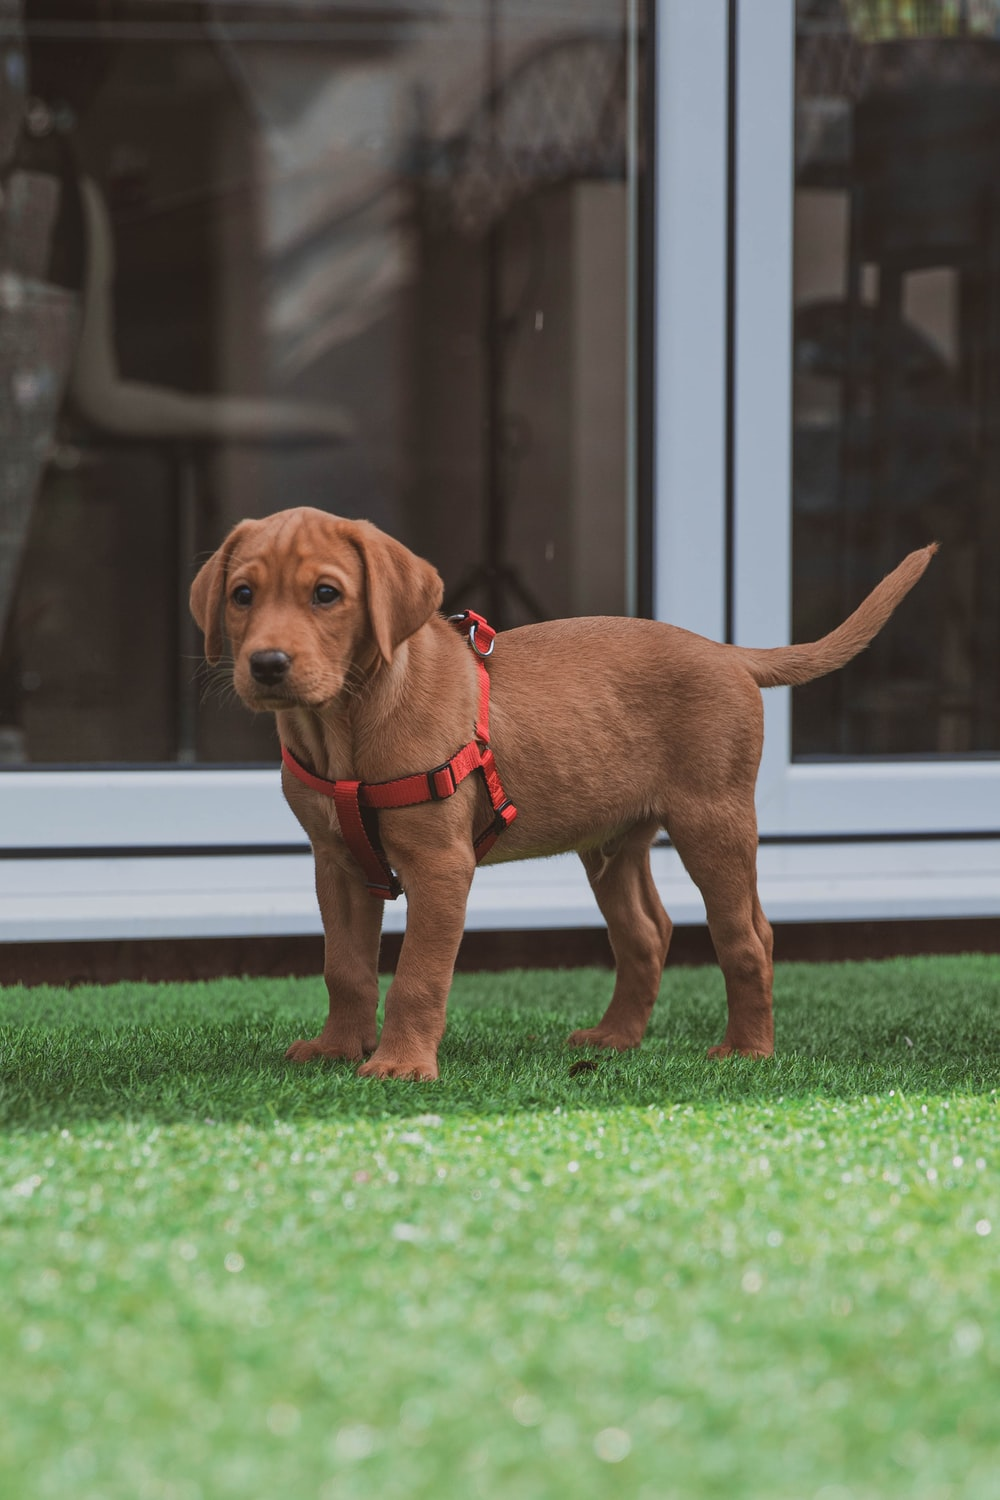 brown short coated dog on green grass lawn